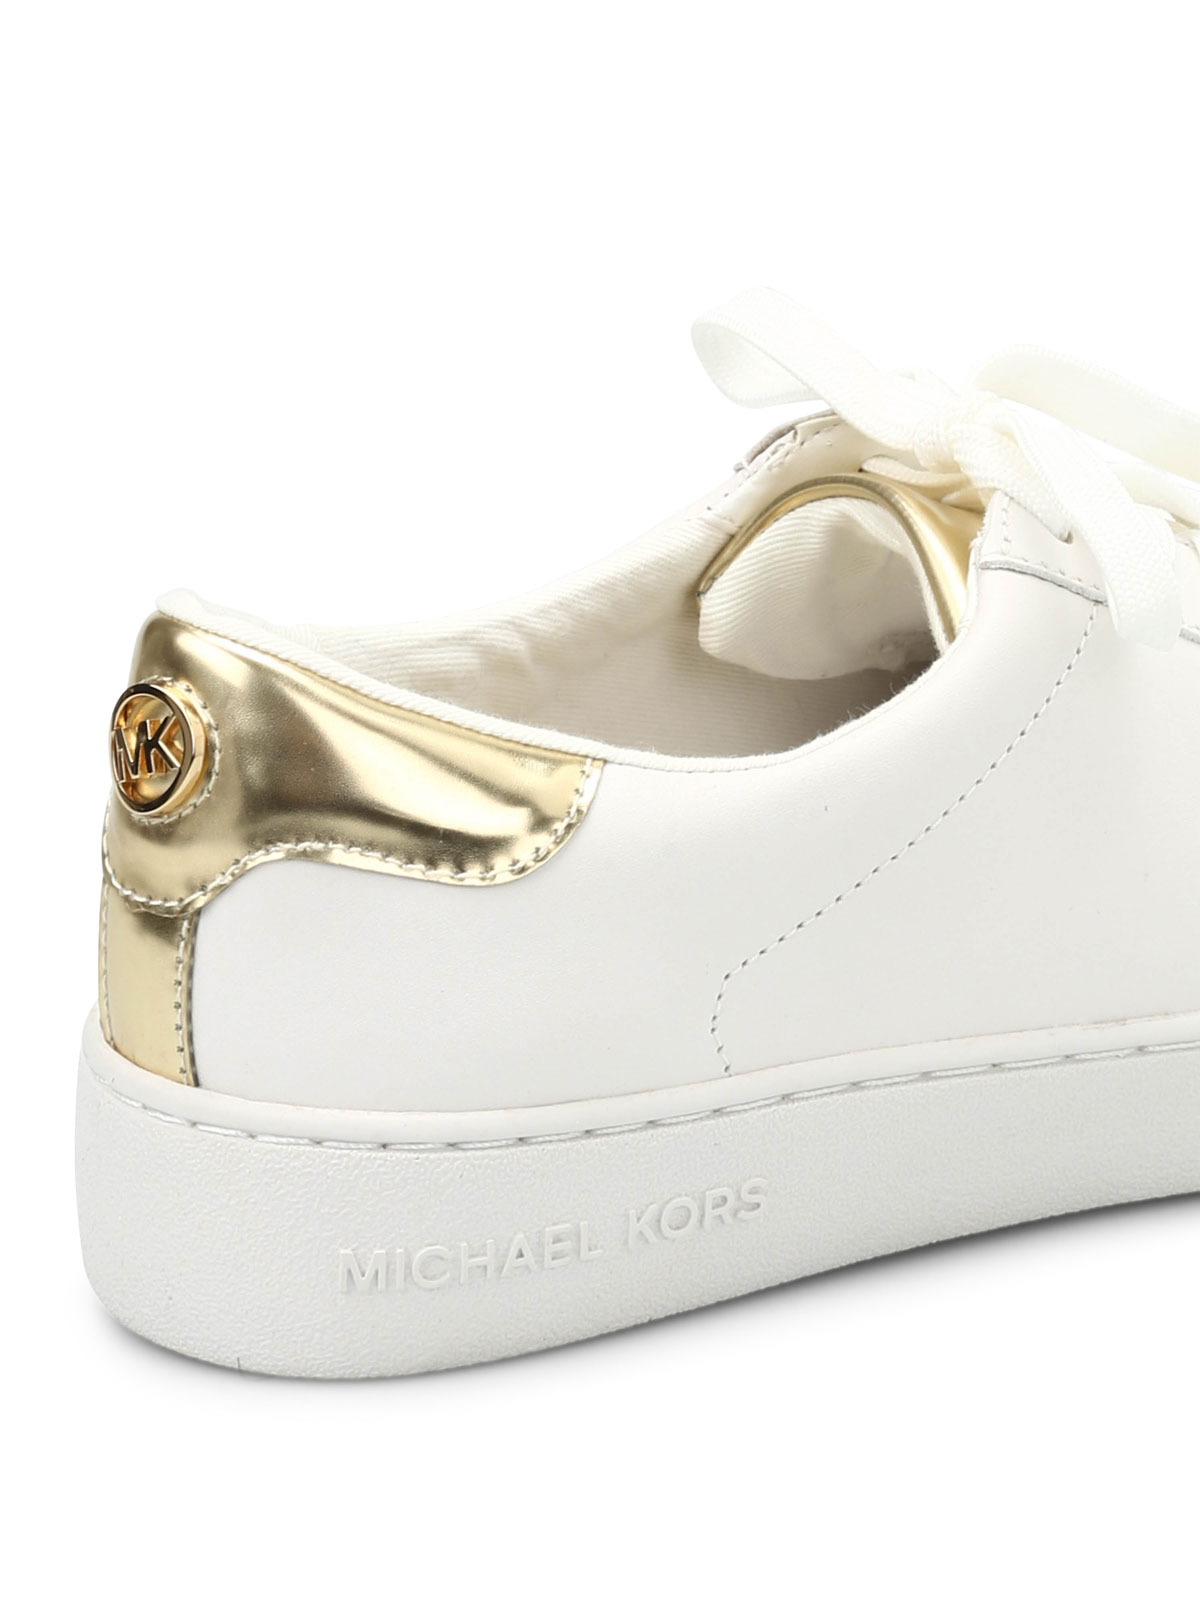 Michael Kors - Irving leather sneakers